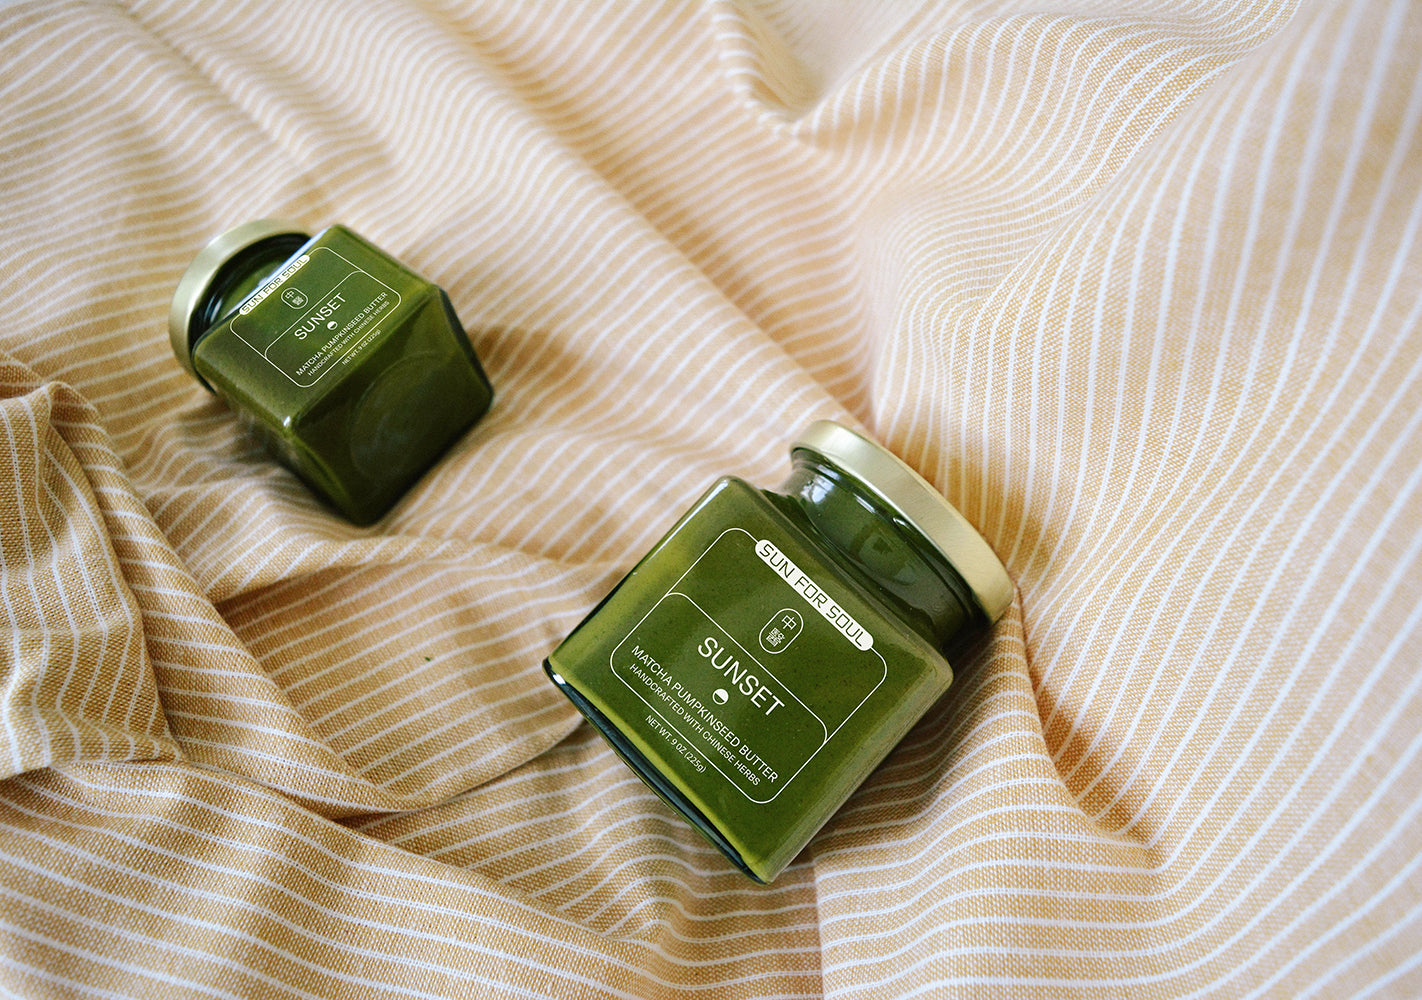 All about our Sunset Matcha sprouted pumpkin seed butter